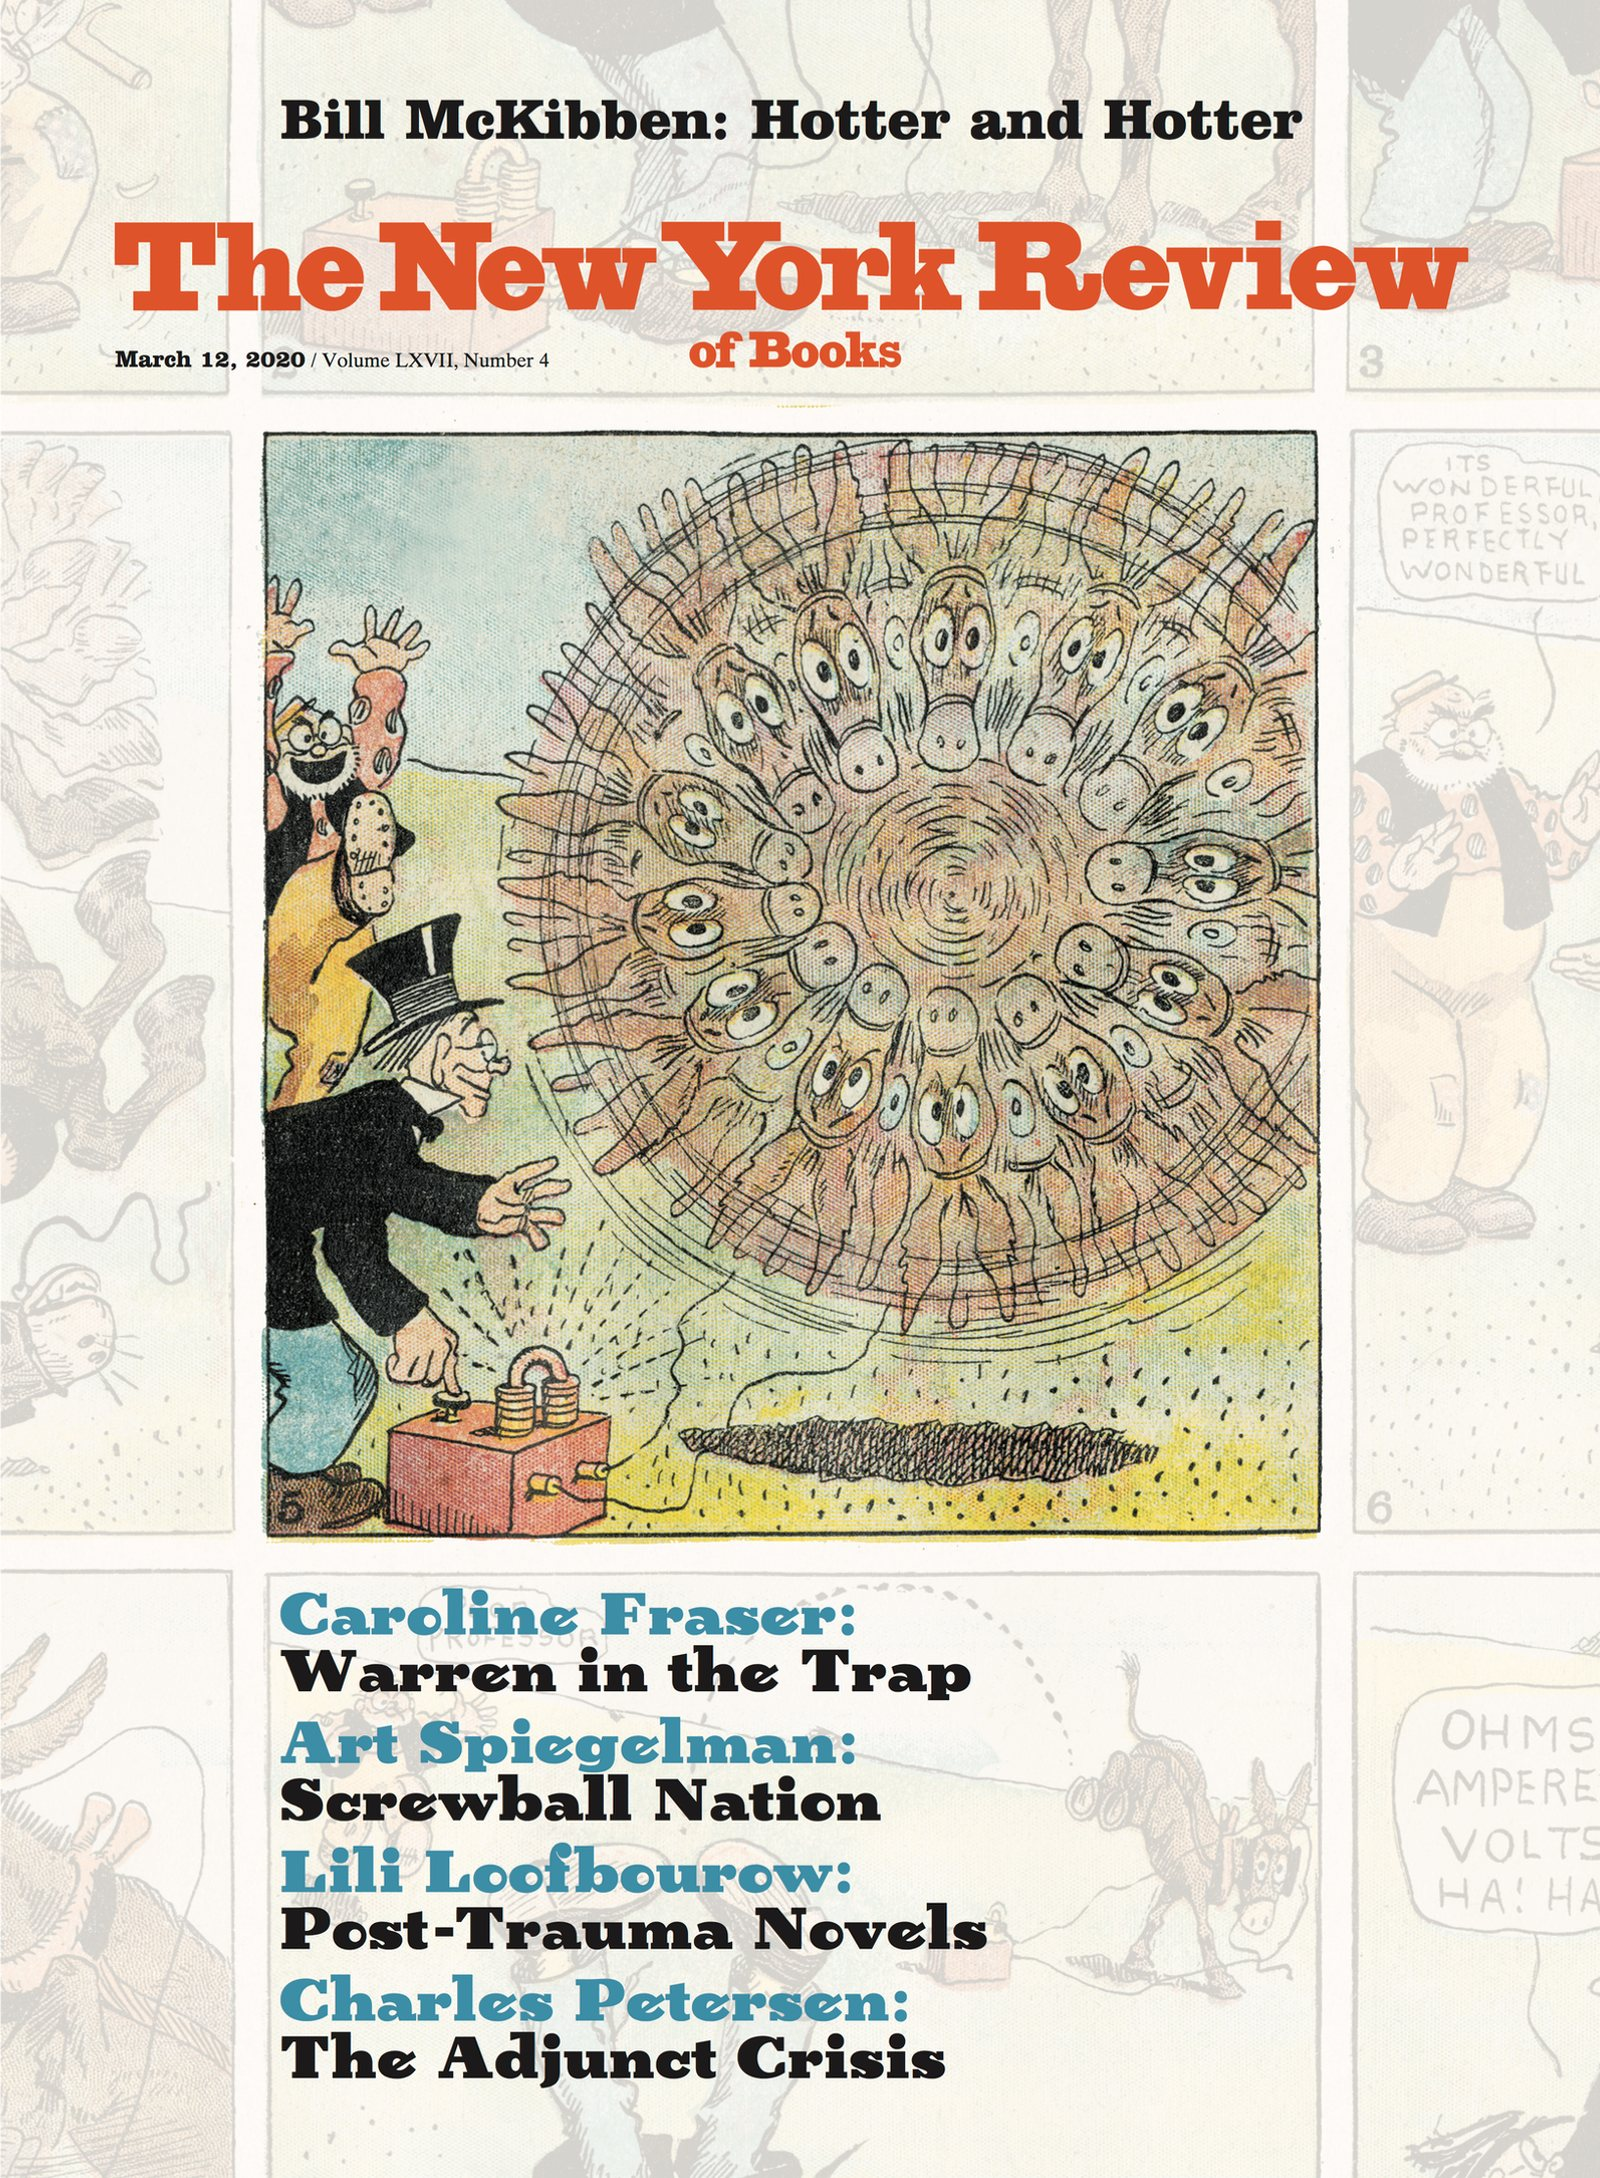 Image of the March 12, 2020 issue cover.